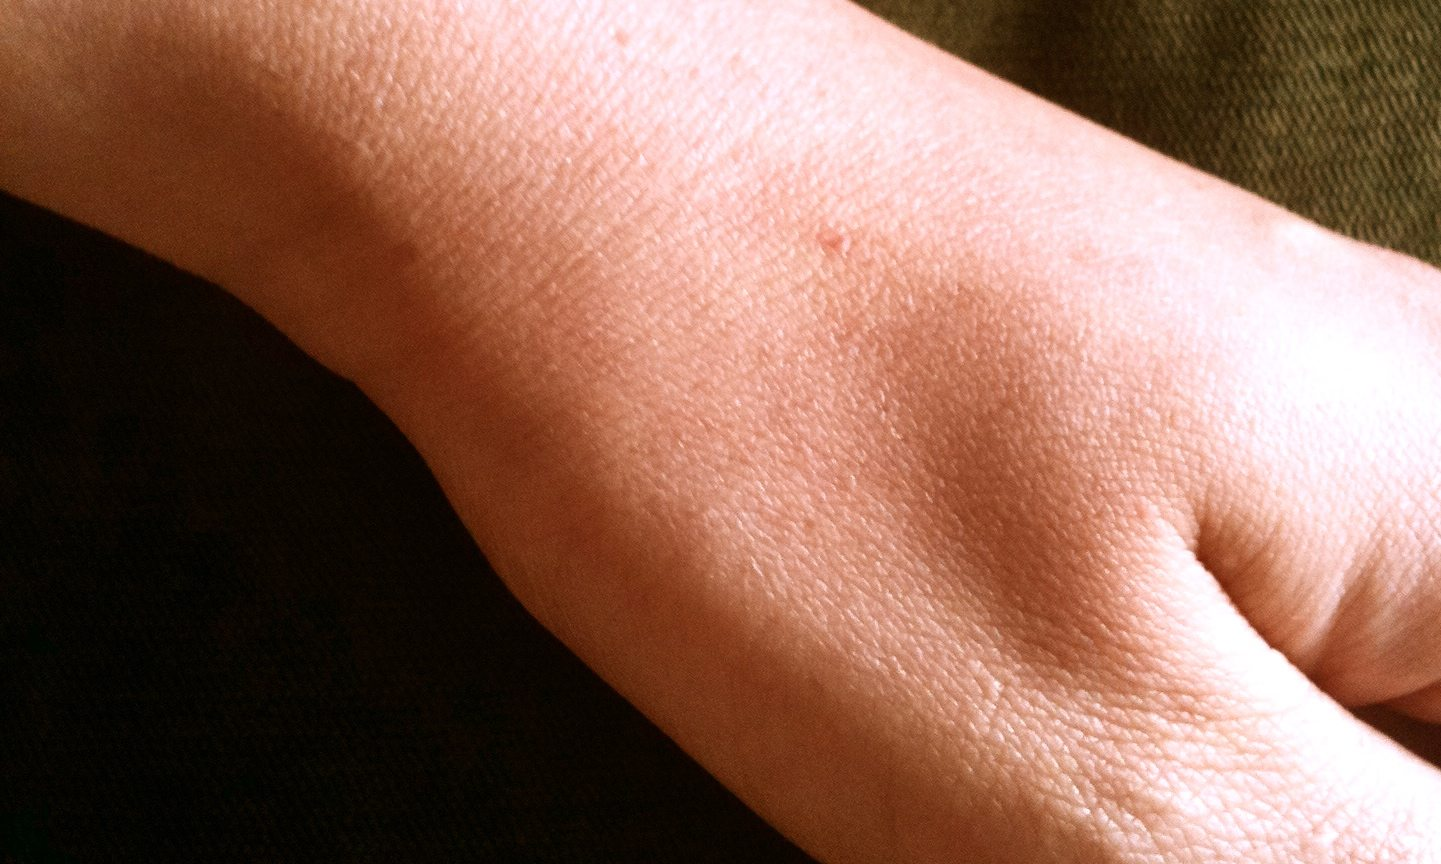 Typical_Skin_Telangiectasia_in_Adult_HHT_Patient